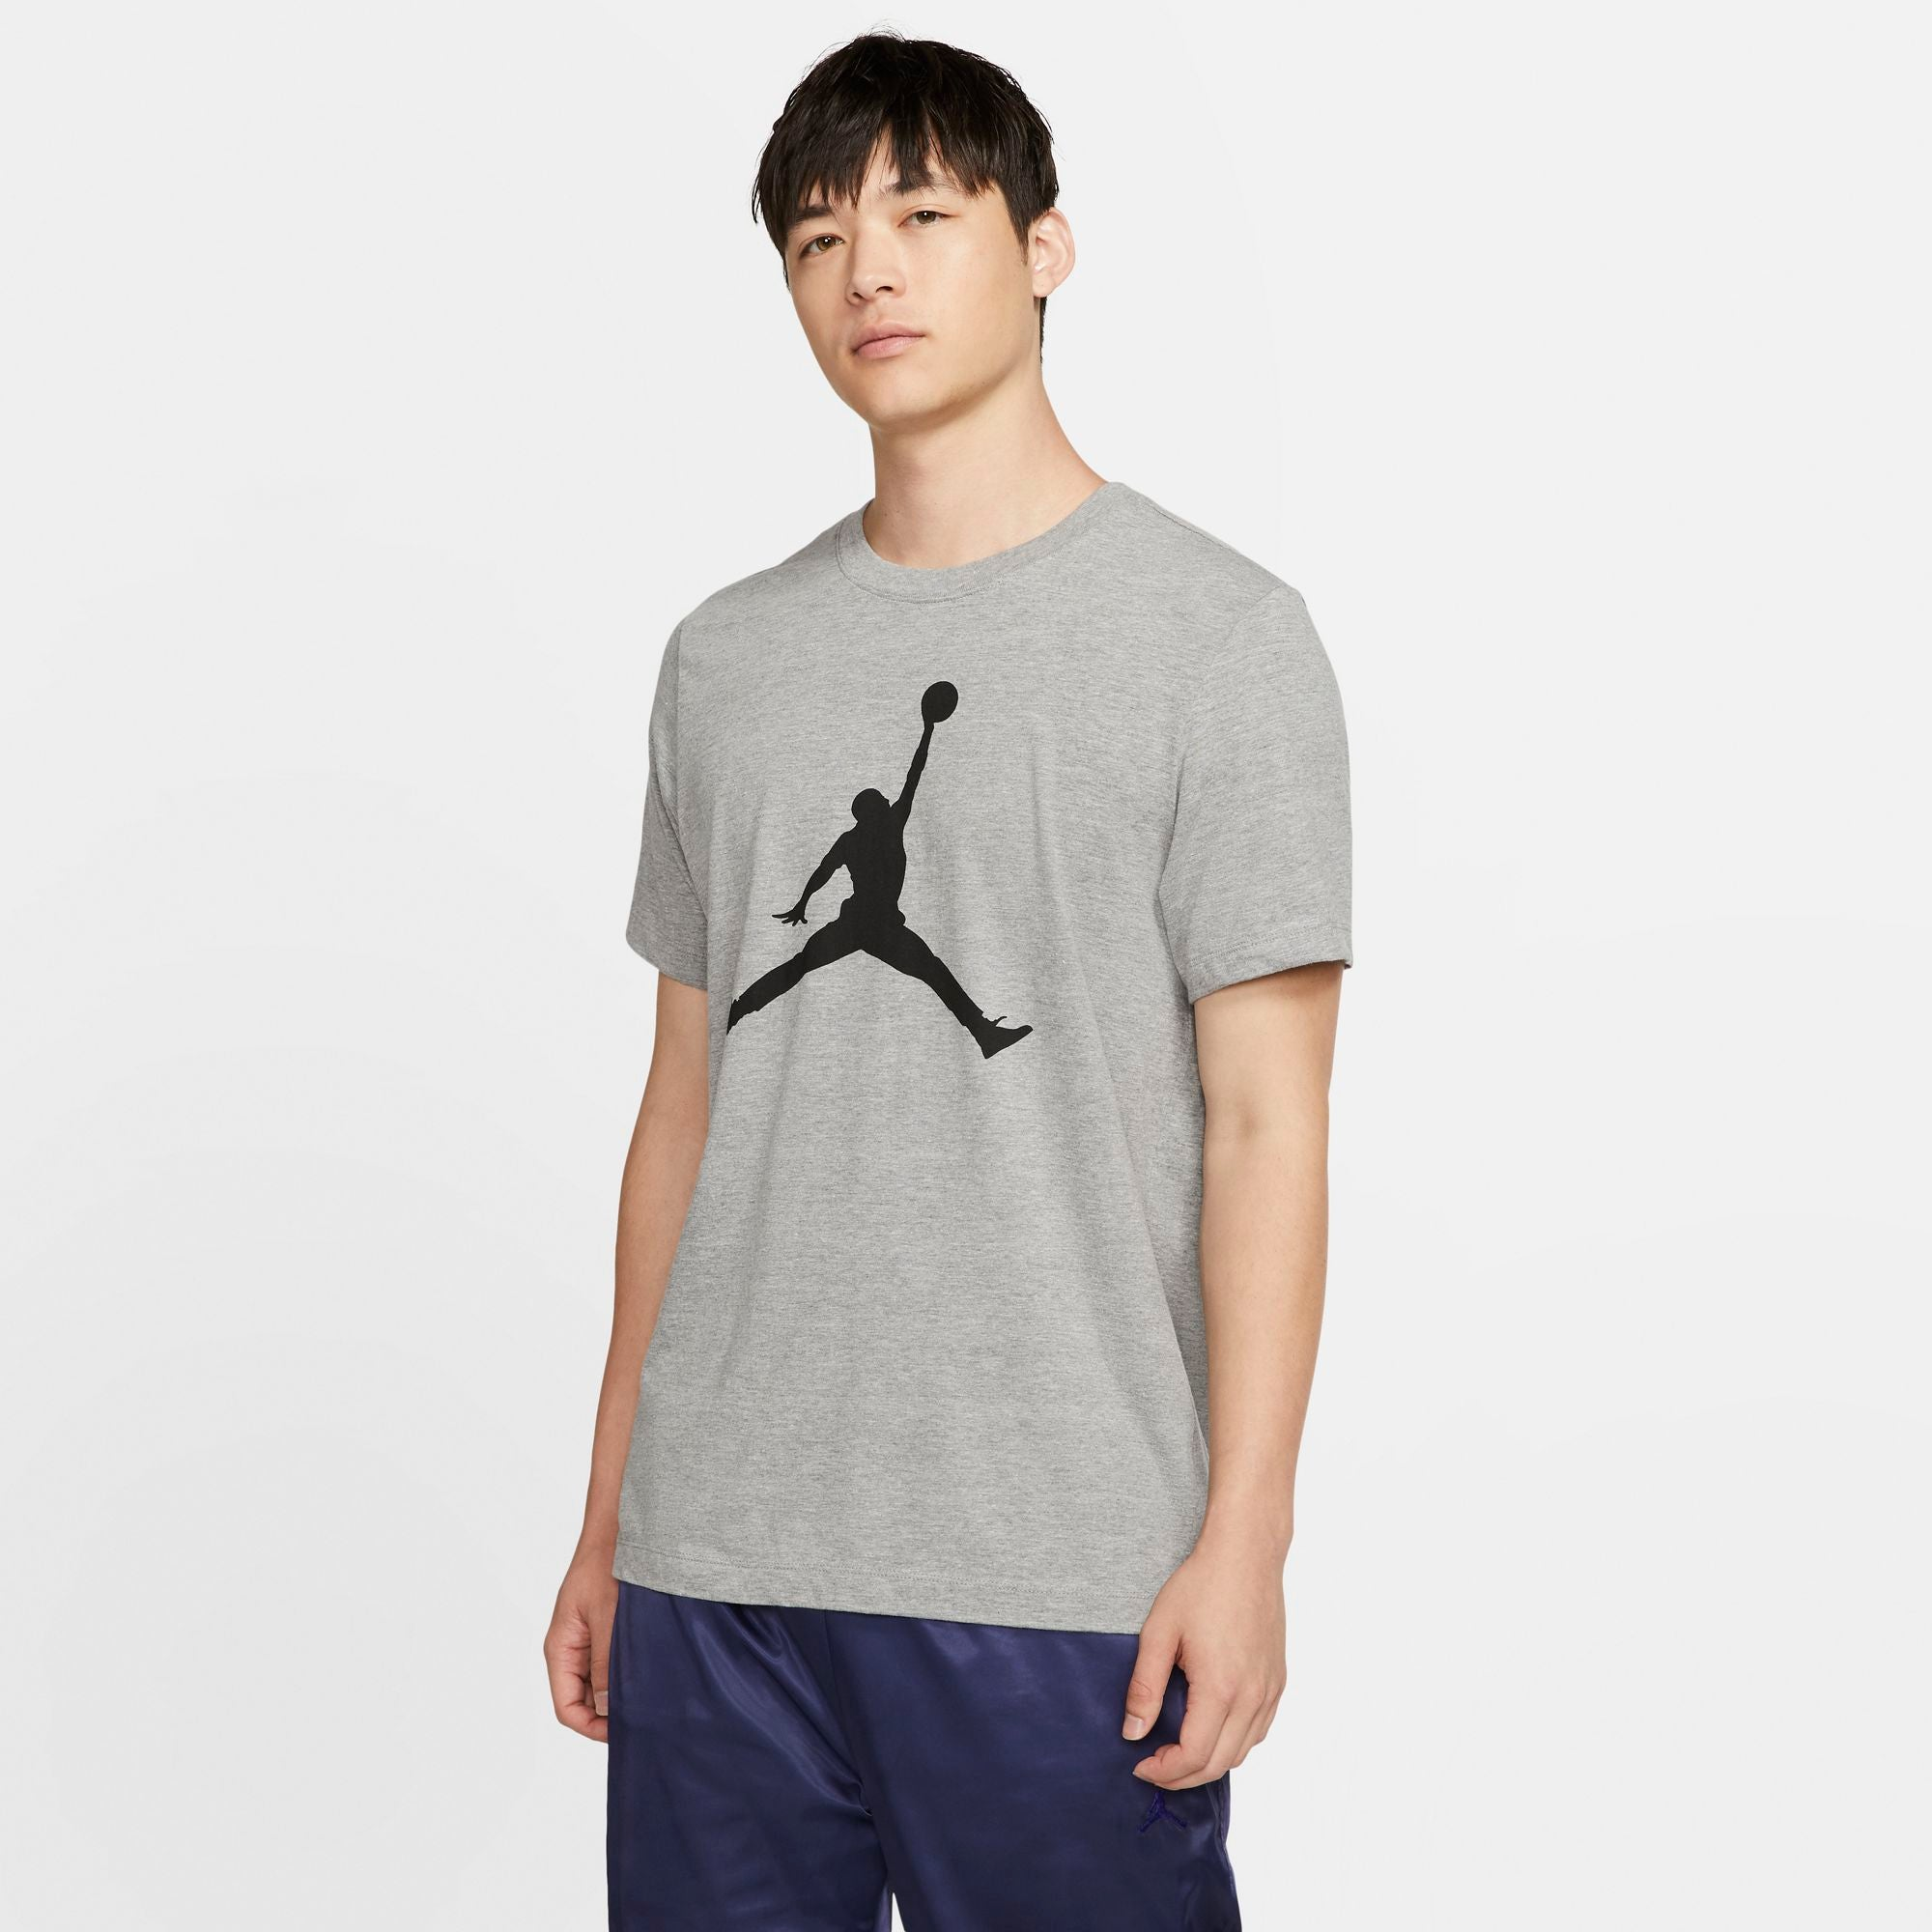 Nike Jordan Jumpman Tee - Carbon Heather/Black